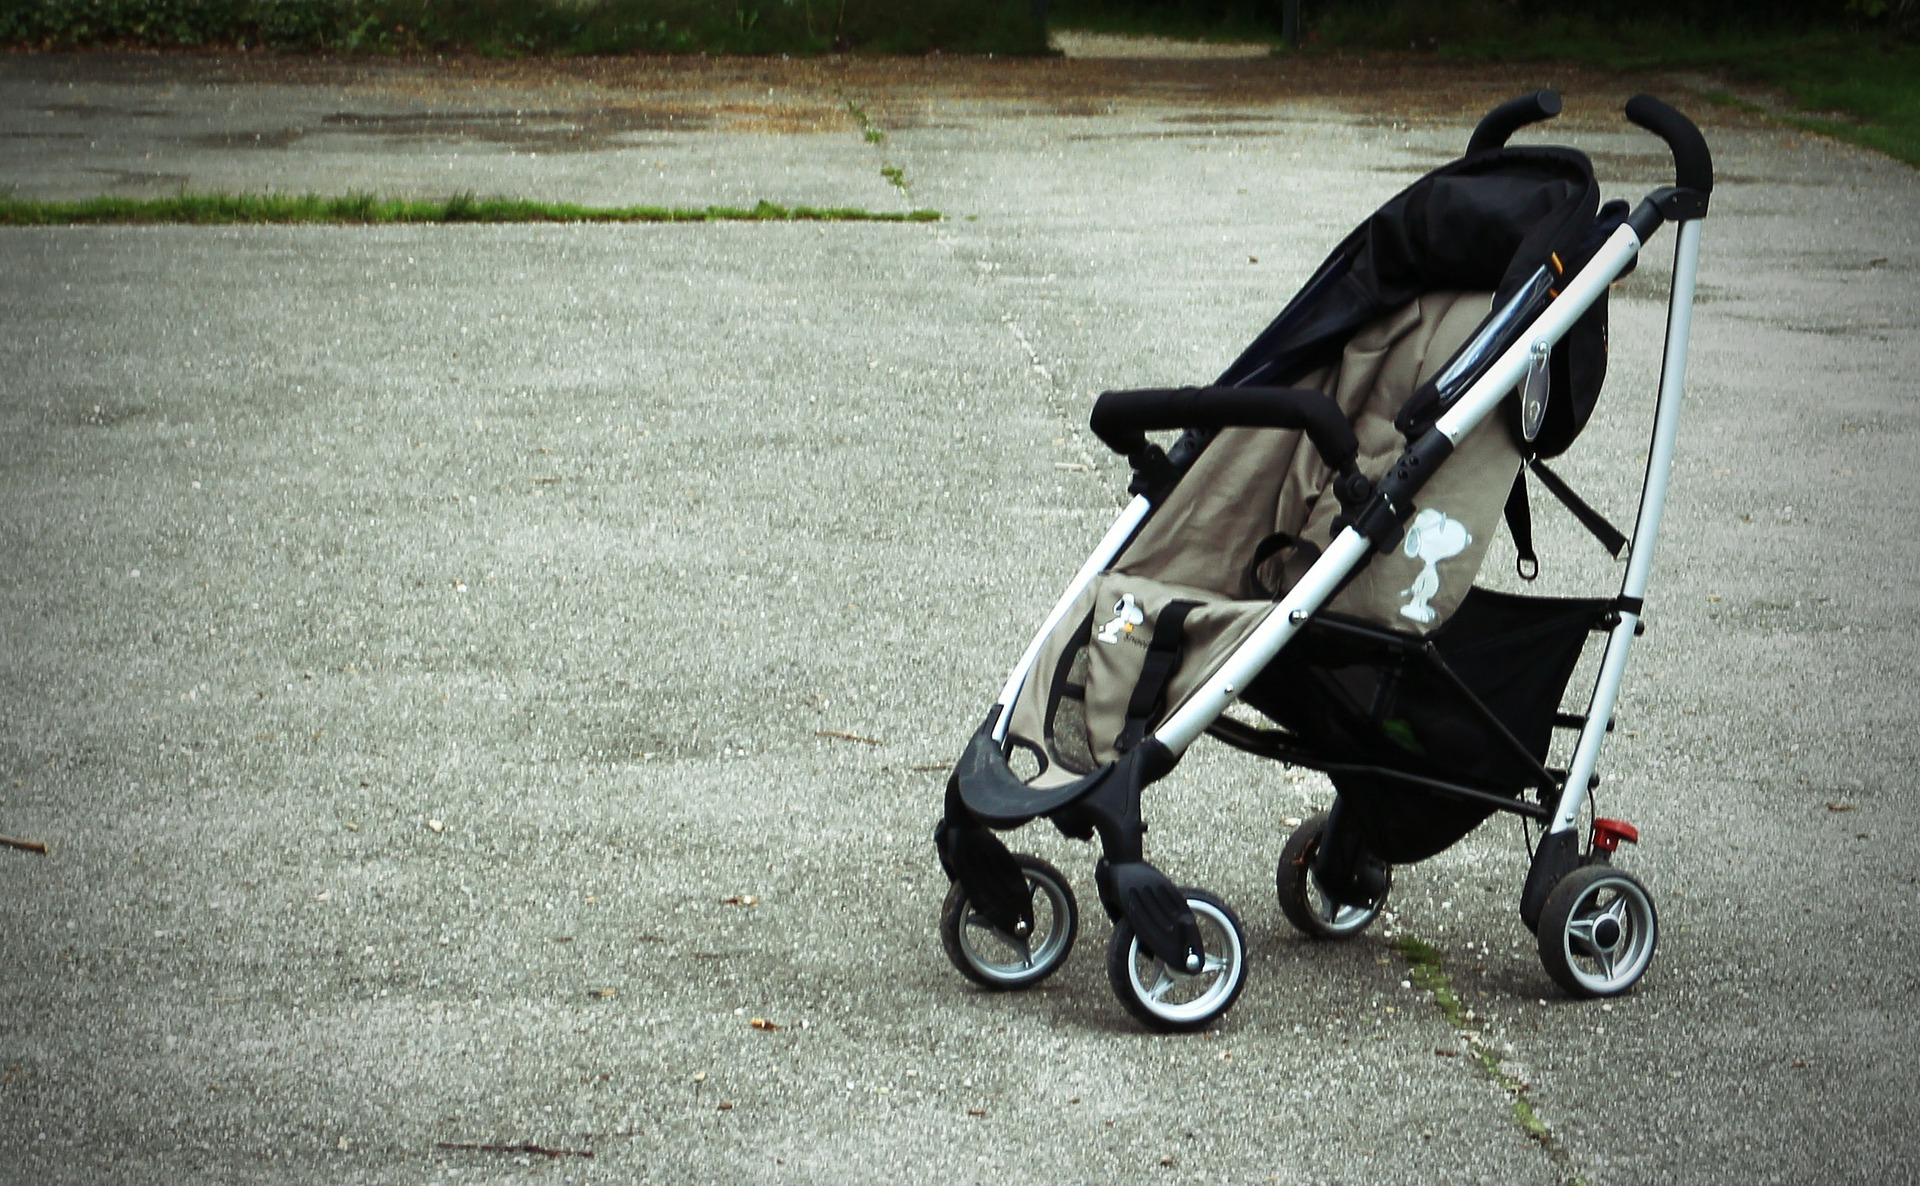 baby-carriage-337698_1920.jpg